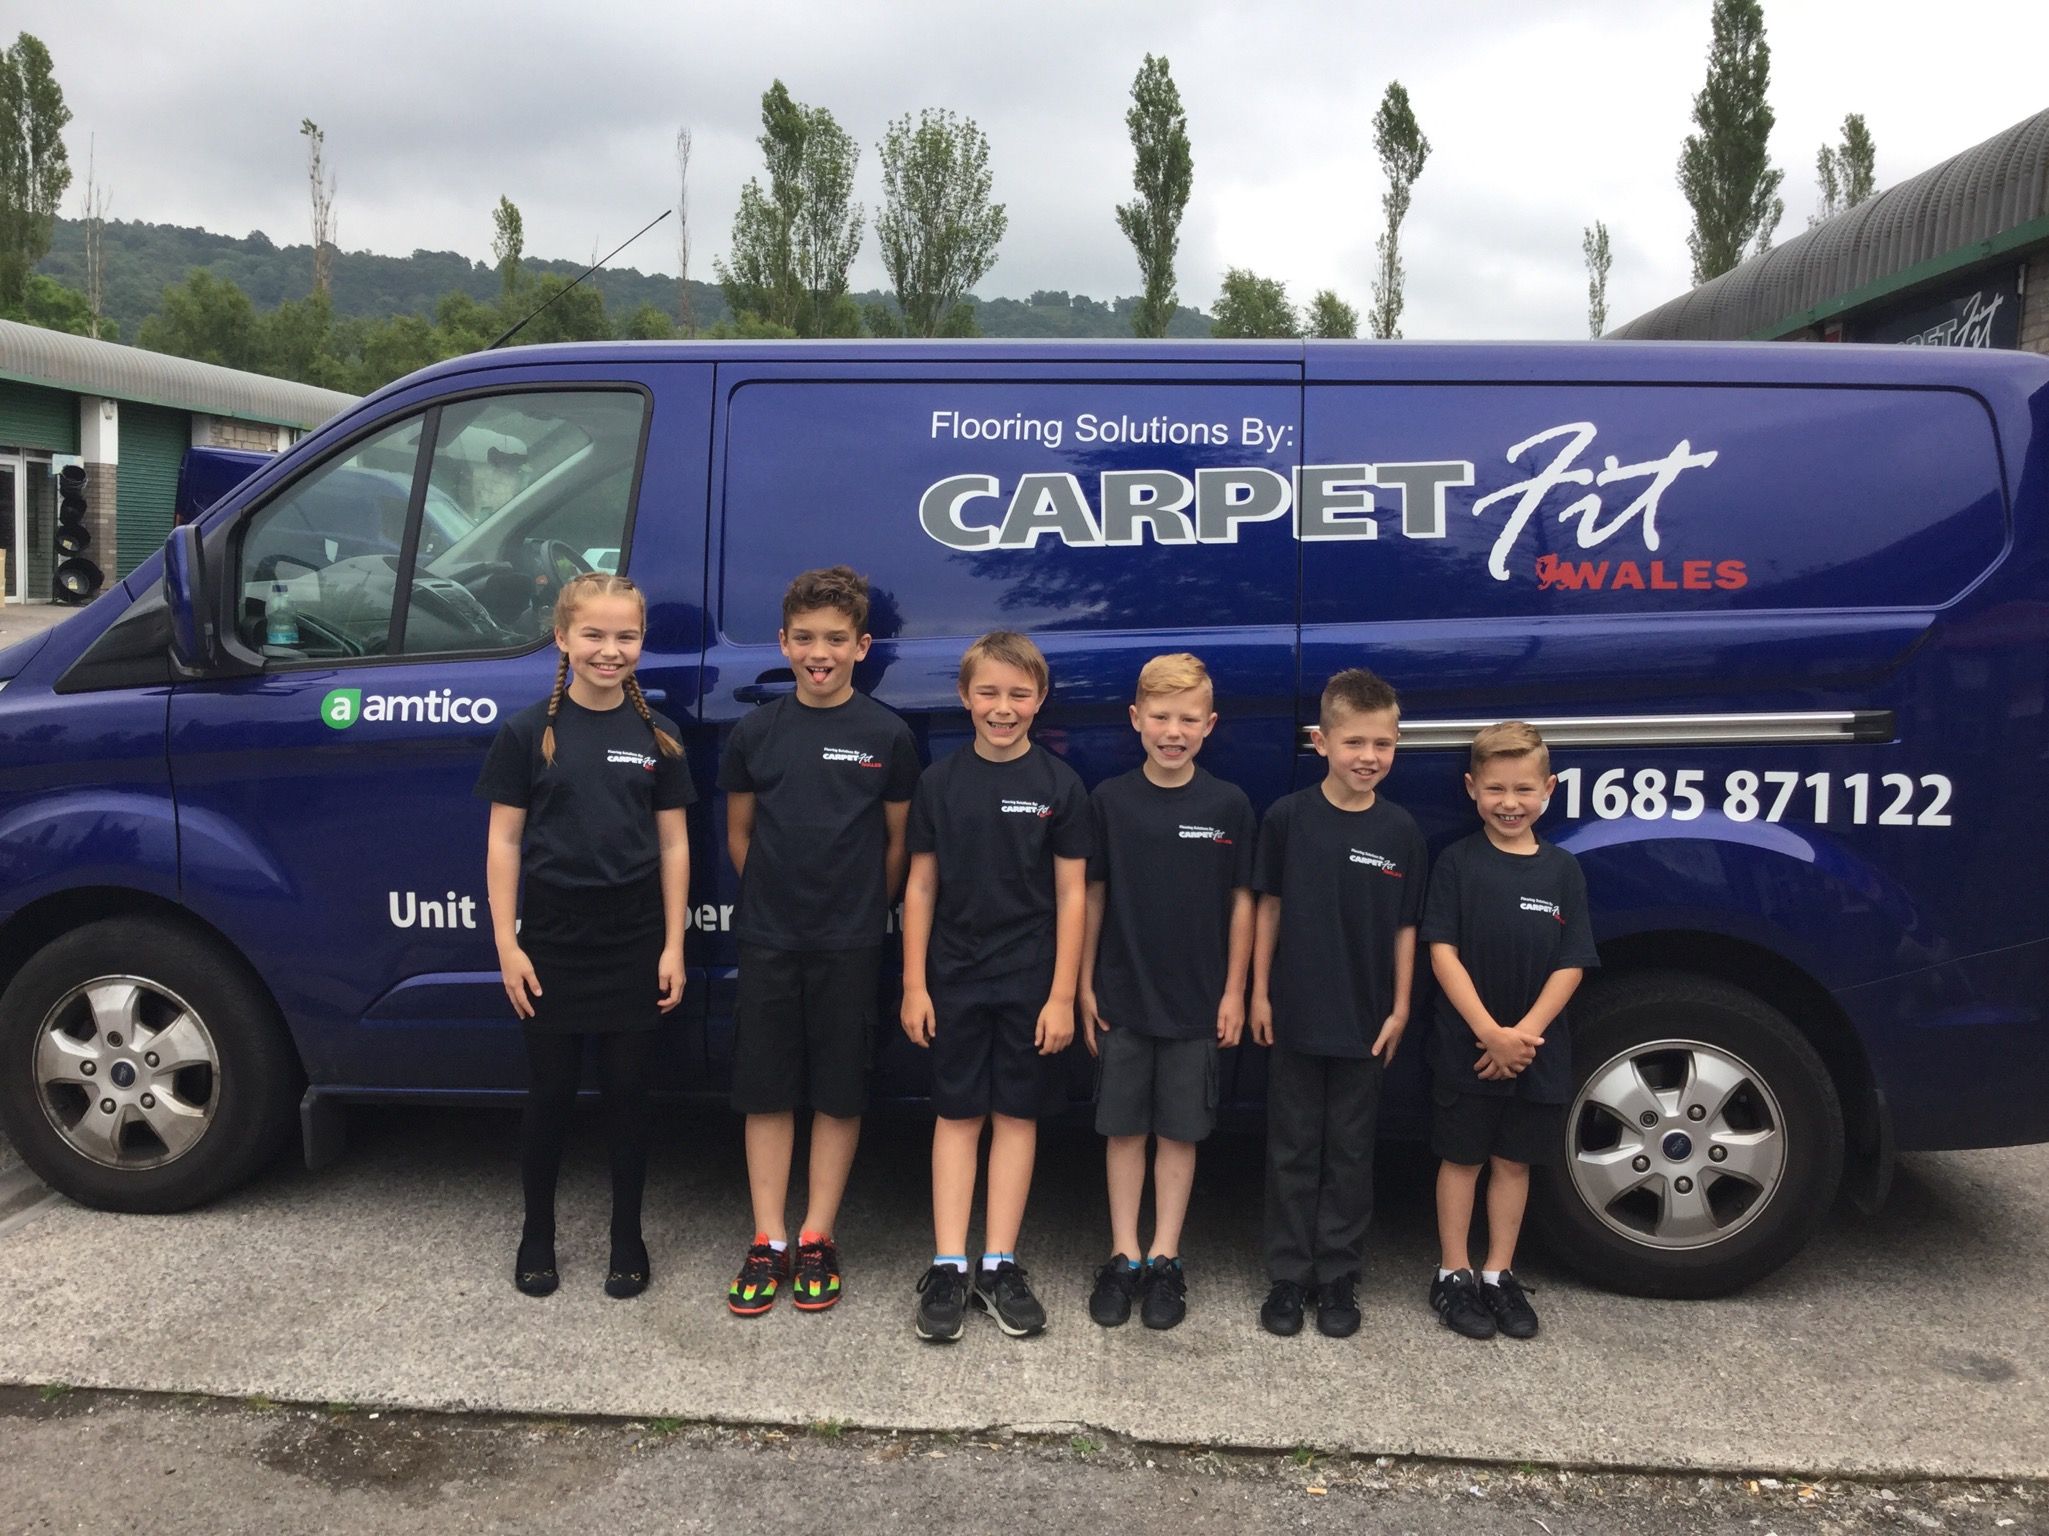 Carpet-Fit-Wales-Kids-Aberdare-South-Wales-Flooring-Carpets-LVT-Vinyl-Cleaning-Professional-Line-Up-local-half-term